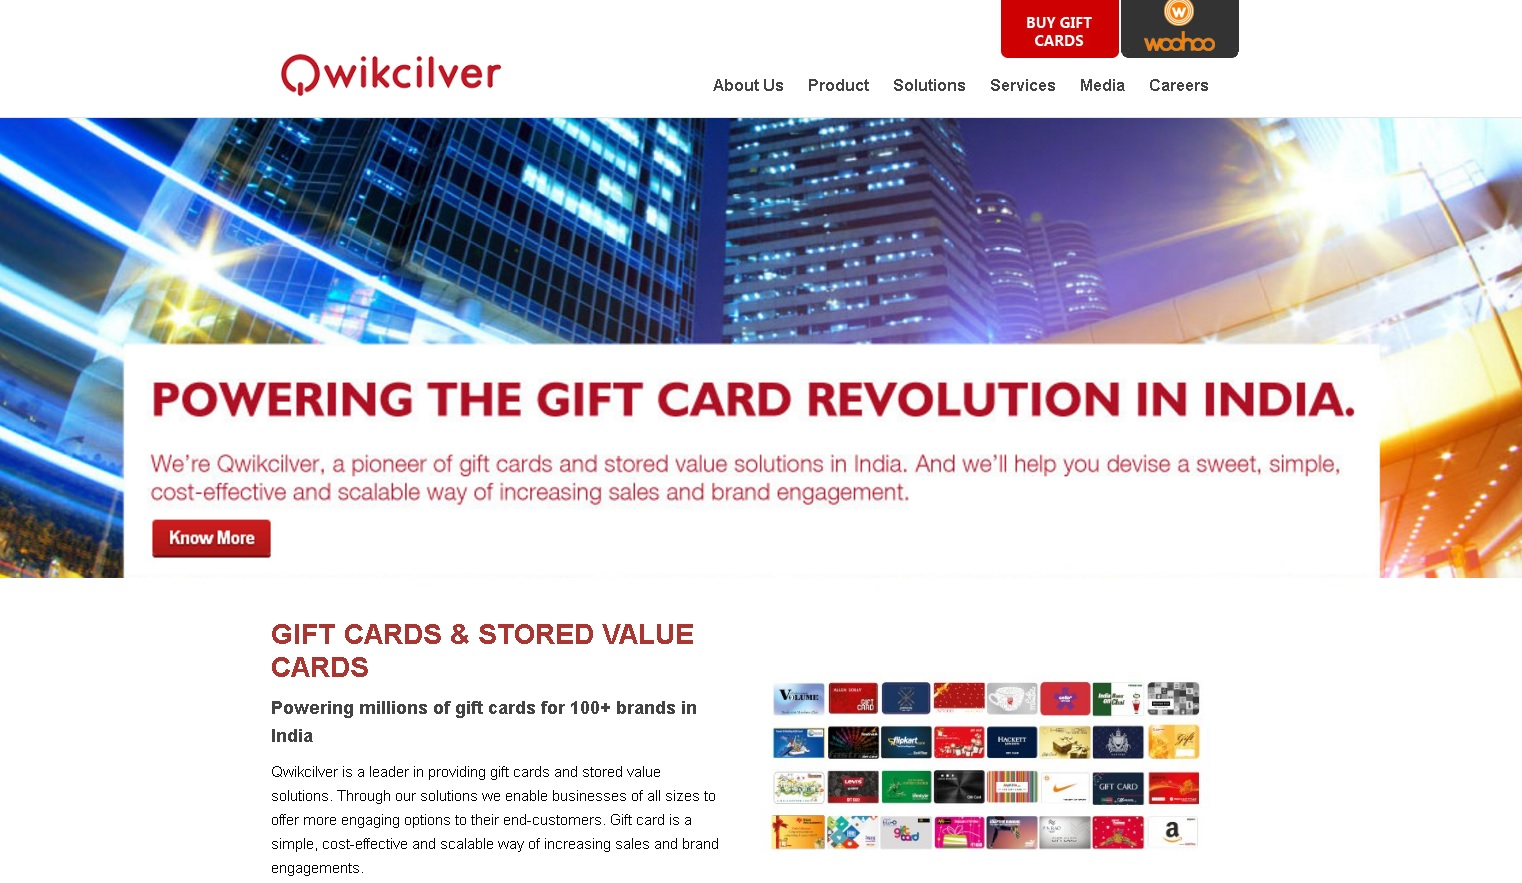 Main page of the Qwikcilver website qwikcilver.com